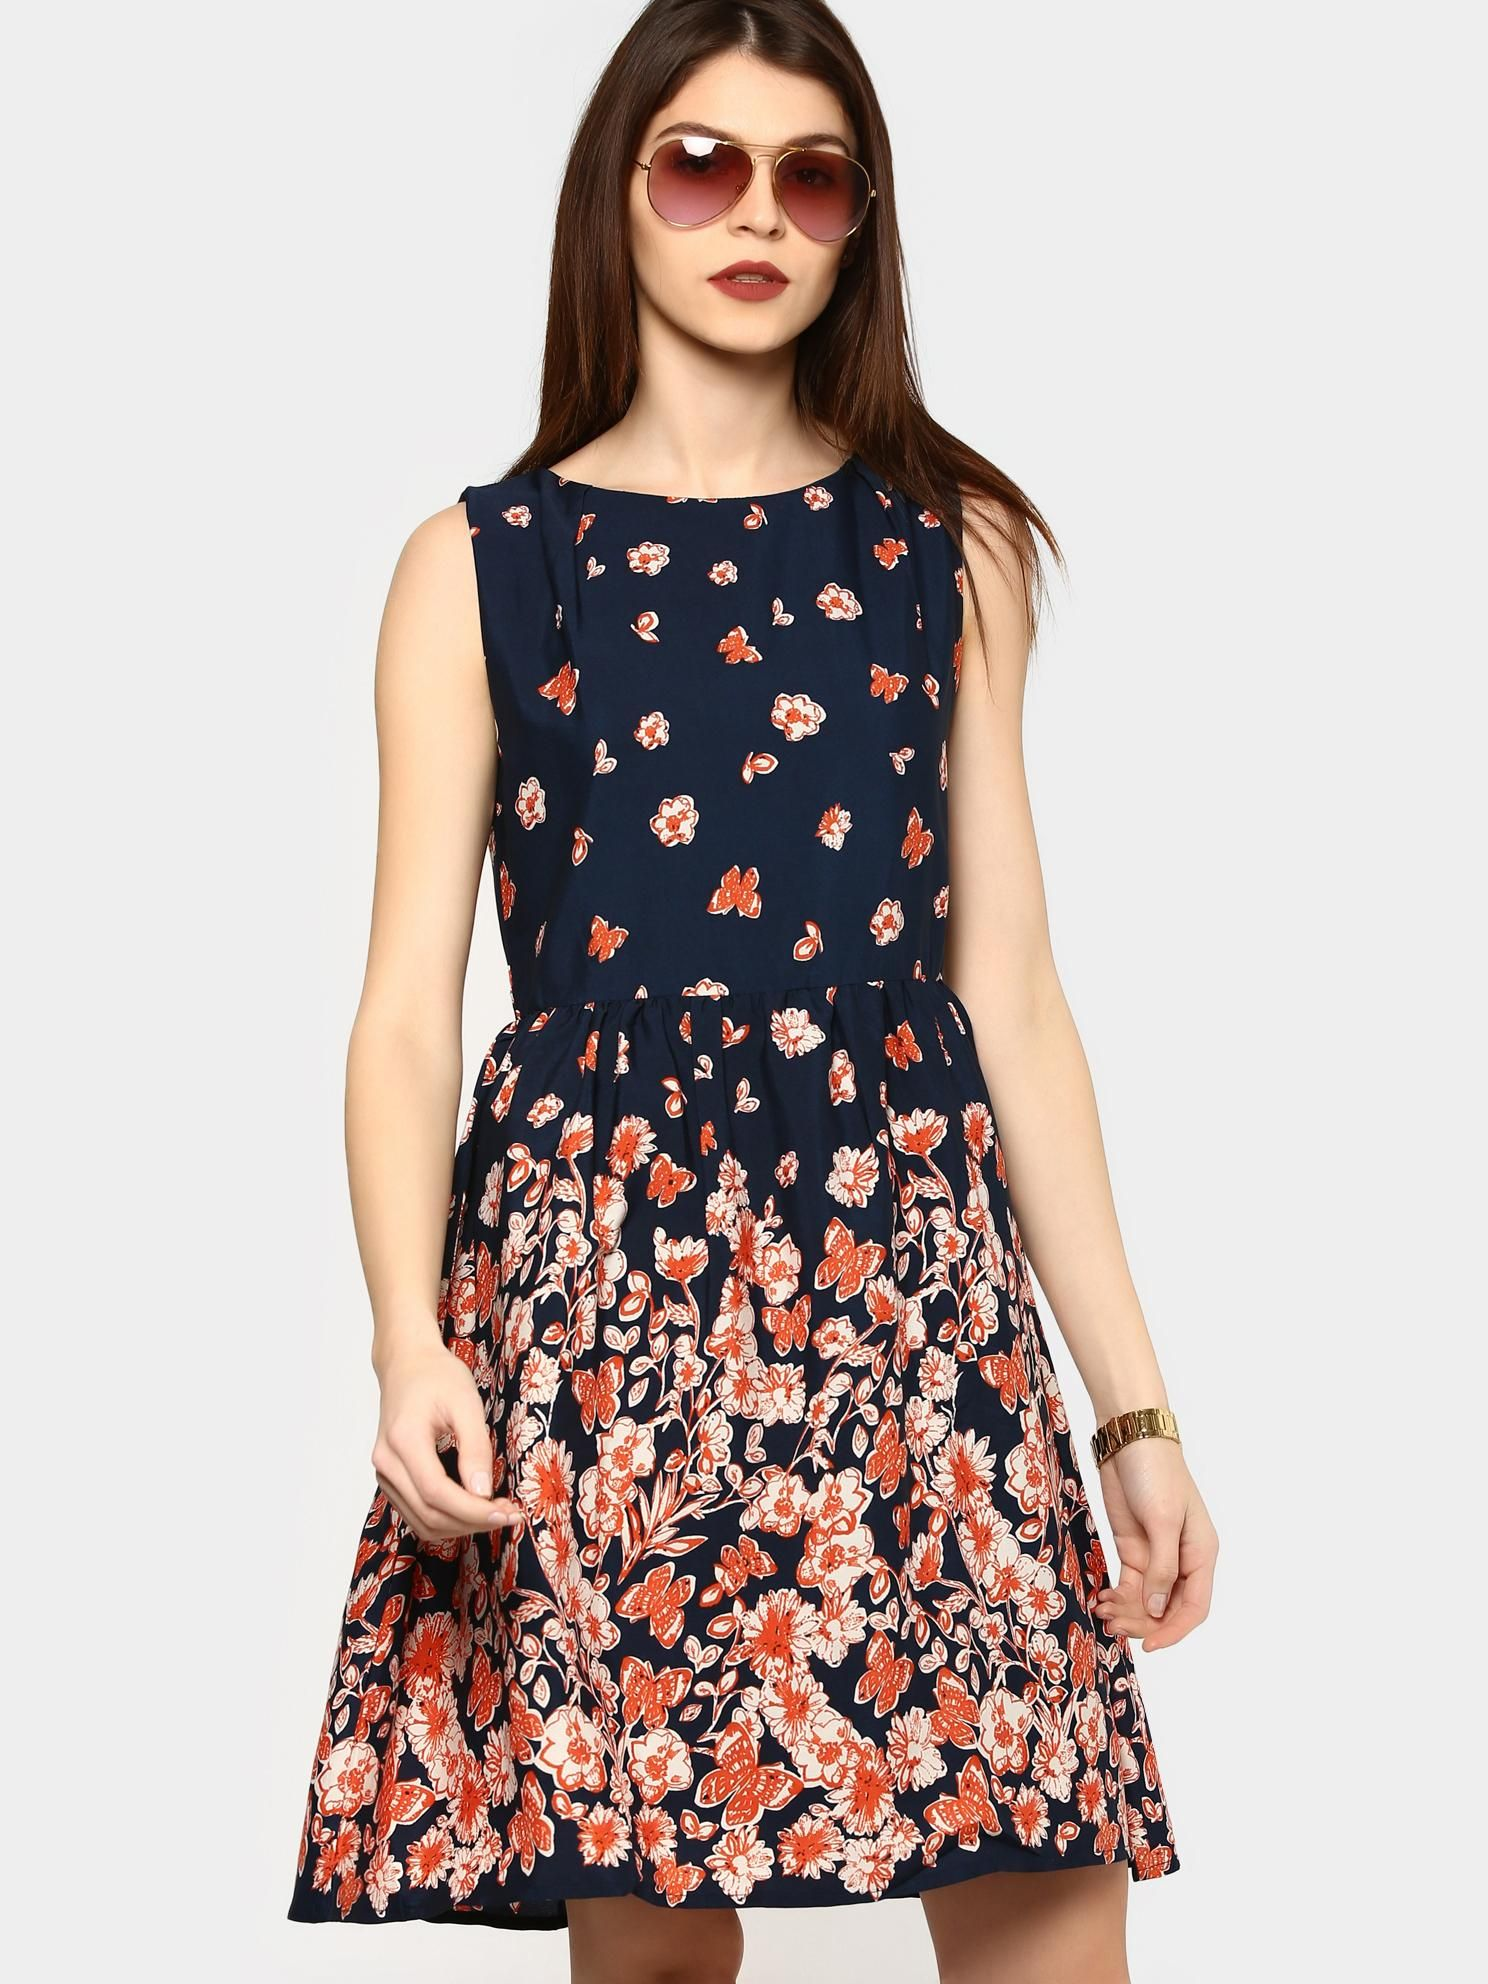 66791c976a544 Harpa Women Navy Printed Fit & Flare Dress | Be Fashionable ...